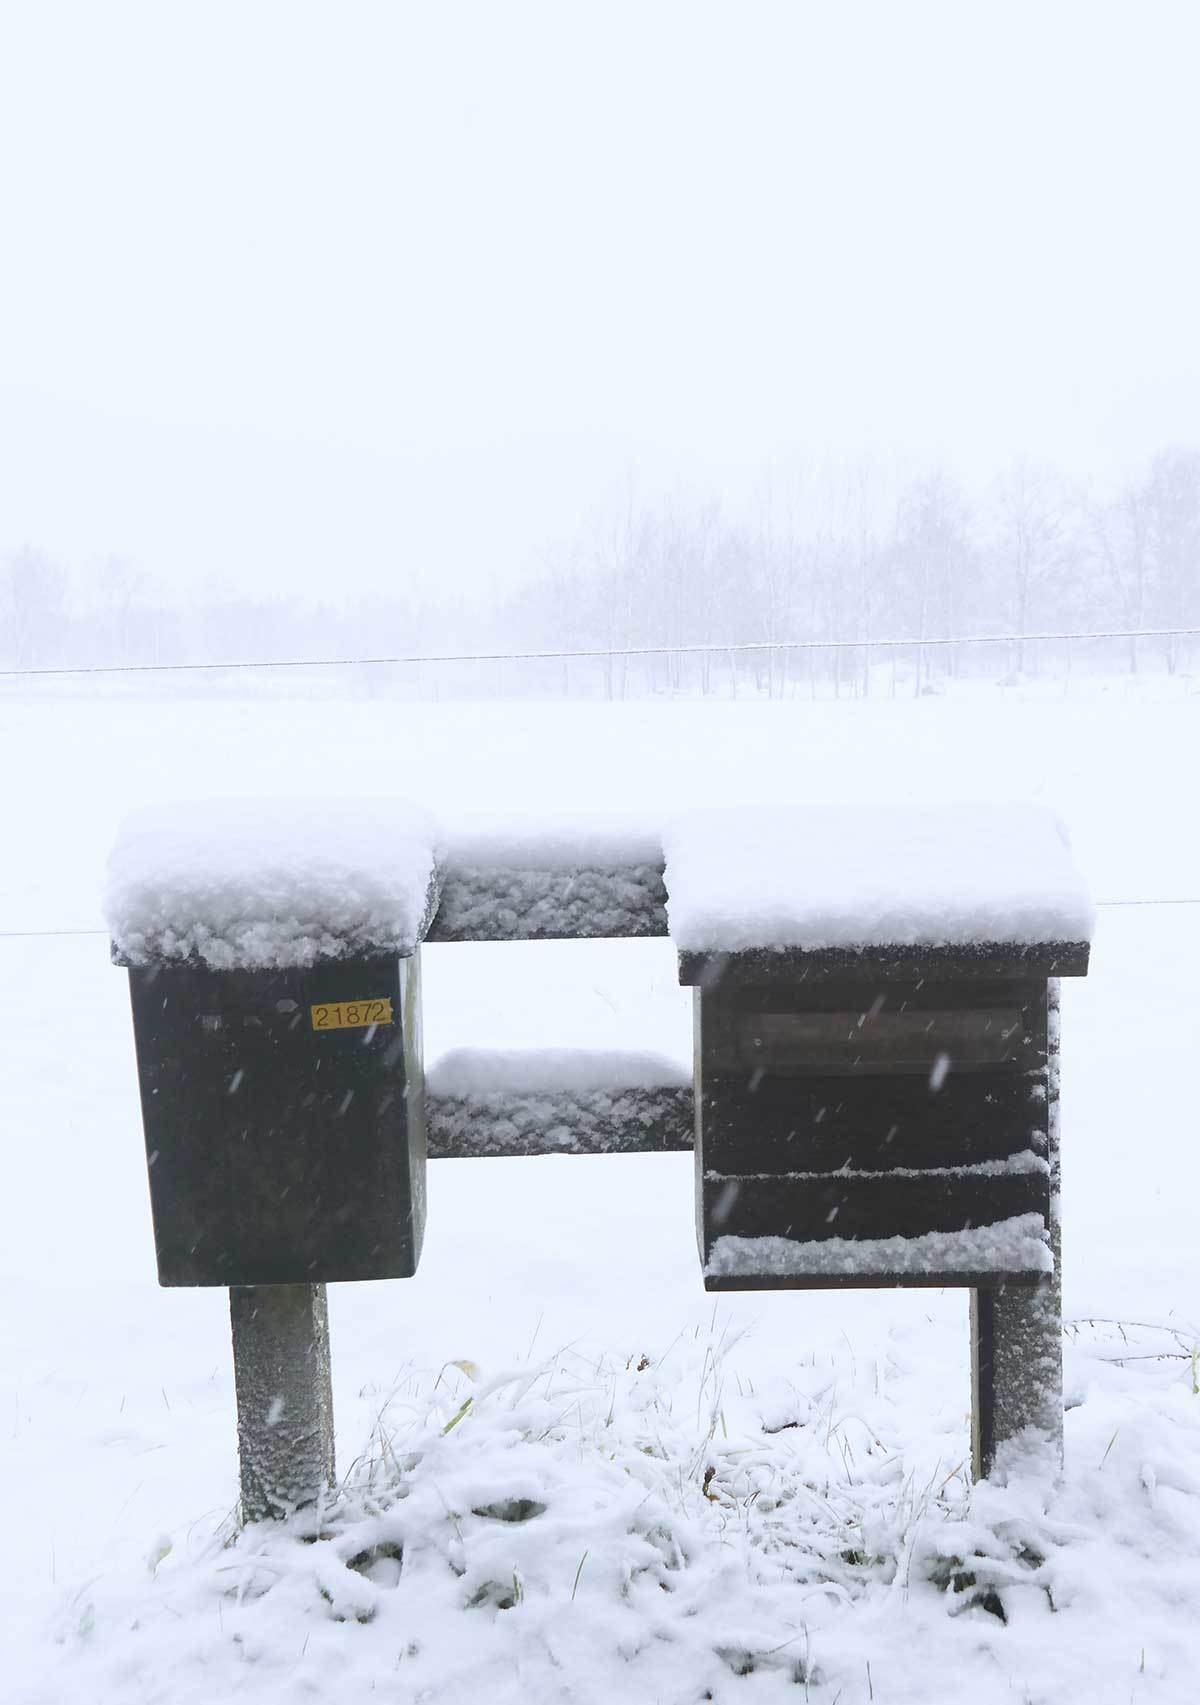 Mailbox in a snow.. Its time to get a new mailbox and move again!